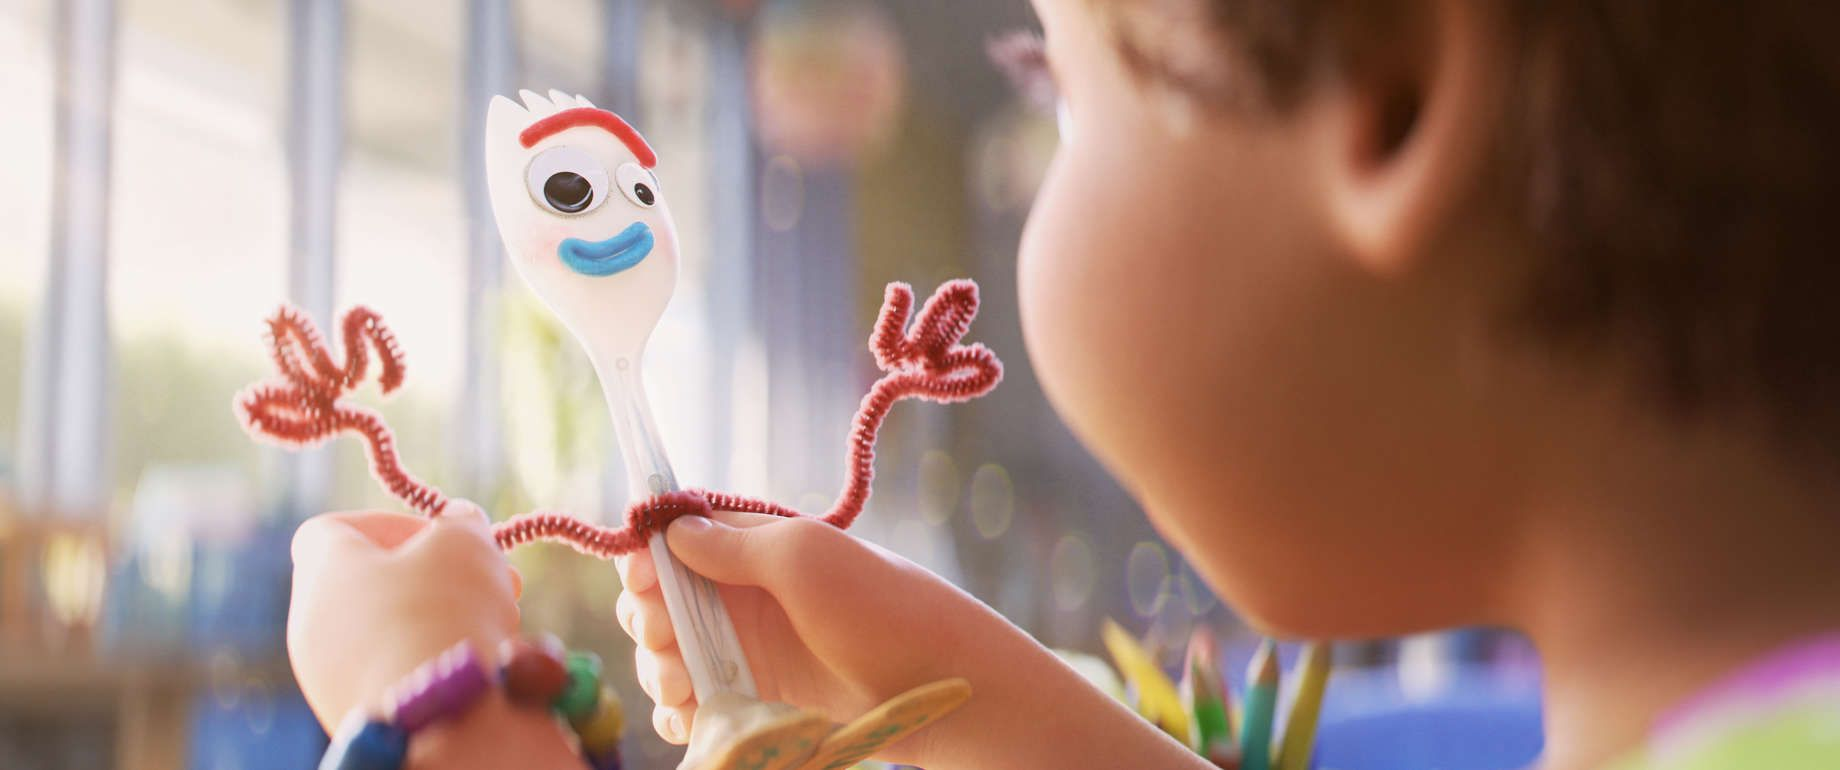 toy story 4 forky 1560937412 - Lo que podemos aprender con Toy Story 4